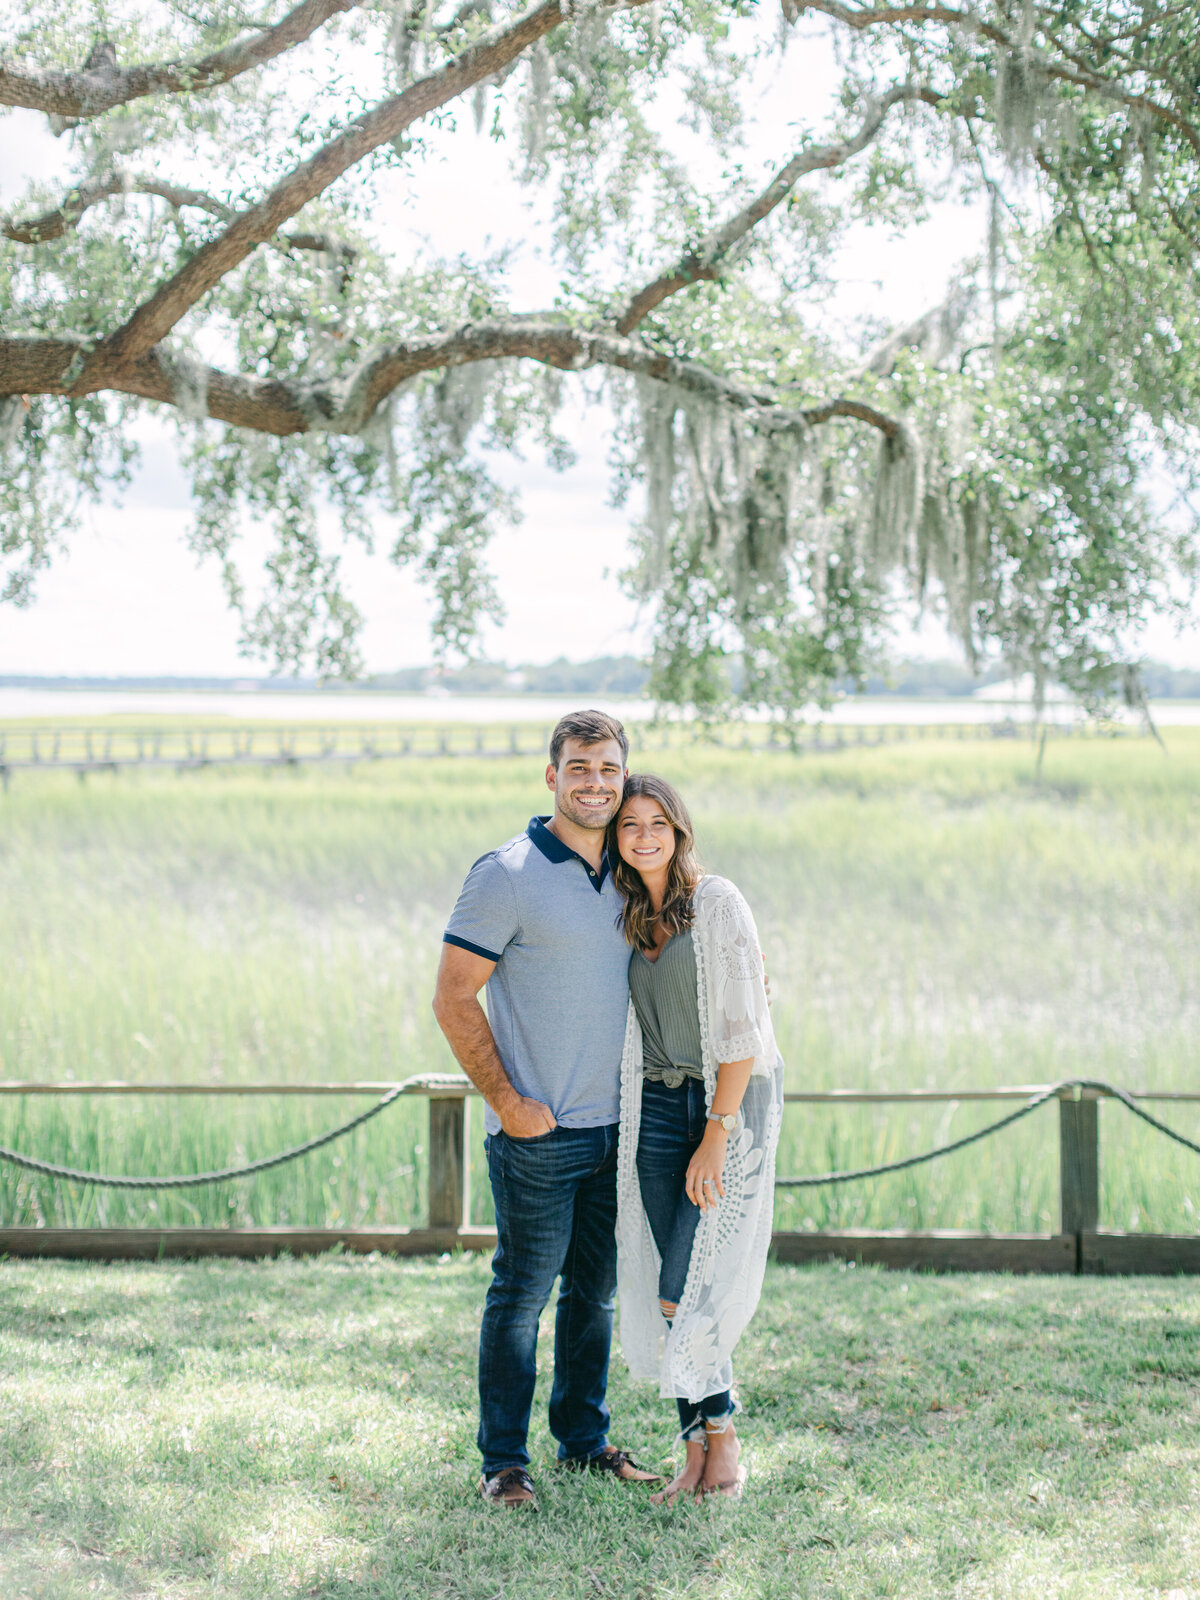 Beaufort Family Photographer | Charleston Family Photograher | Hilton Head Family Photographer | Hilton Head Island Wedding Photographer | Savannah Wedding Photographer | Beaufort Wedding Photographer _ ARP-87